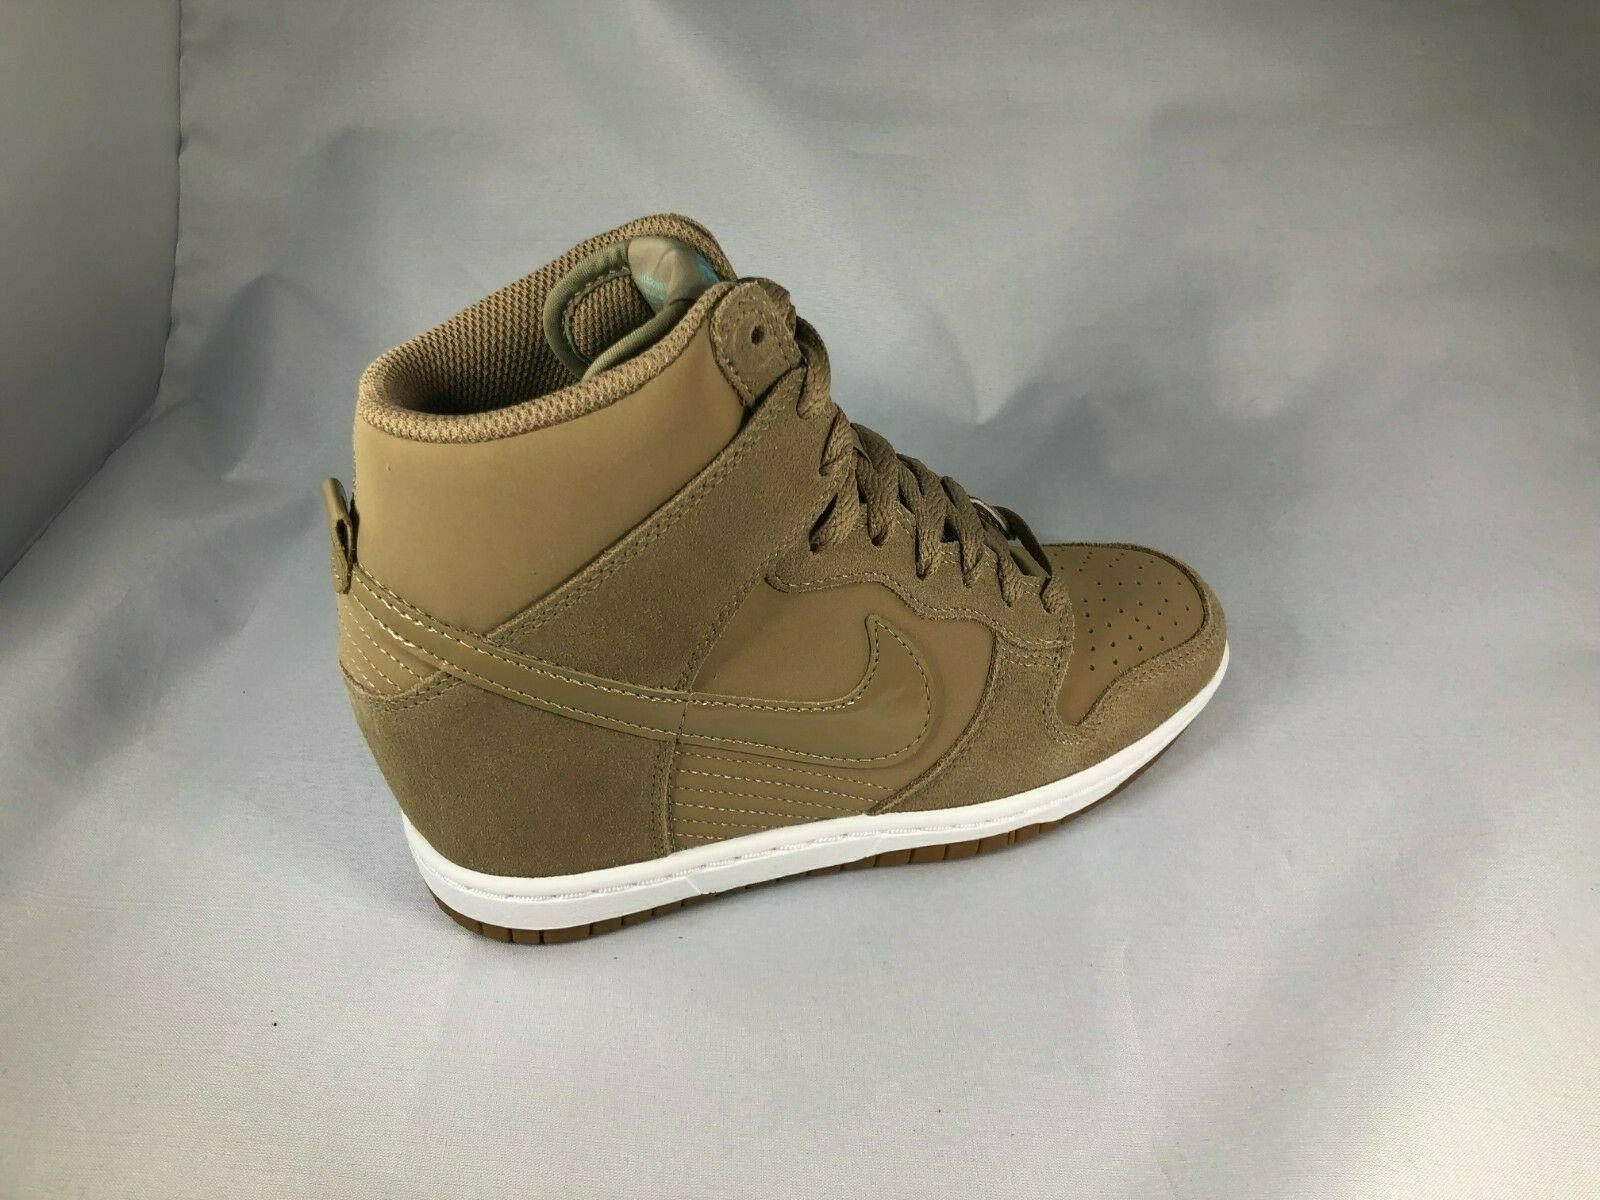 NEW WOMENS DUNK SKY ESSENTIAL SHOES 644877 8